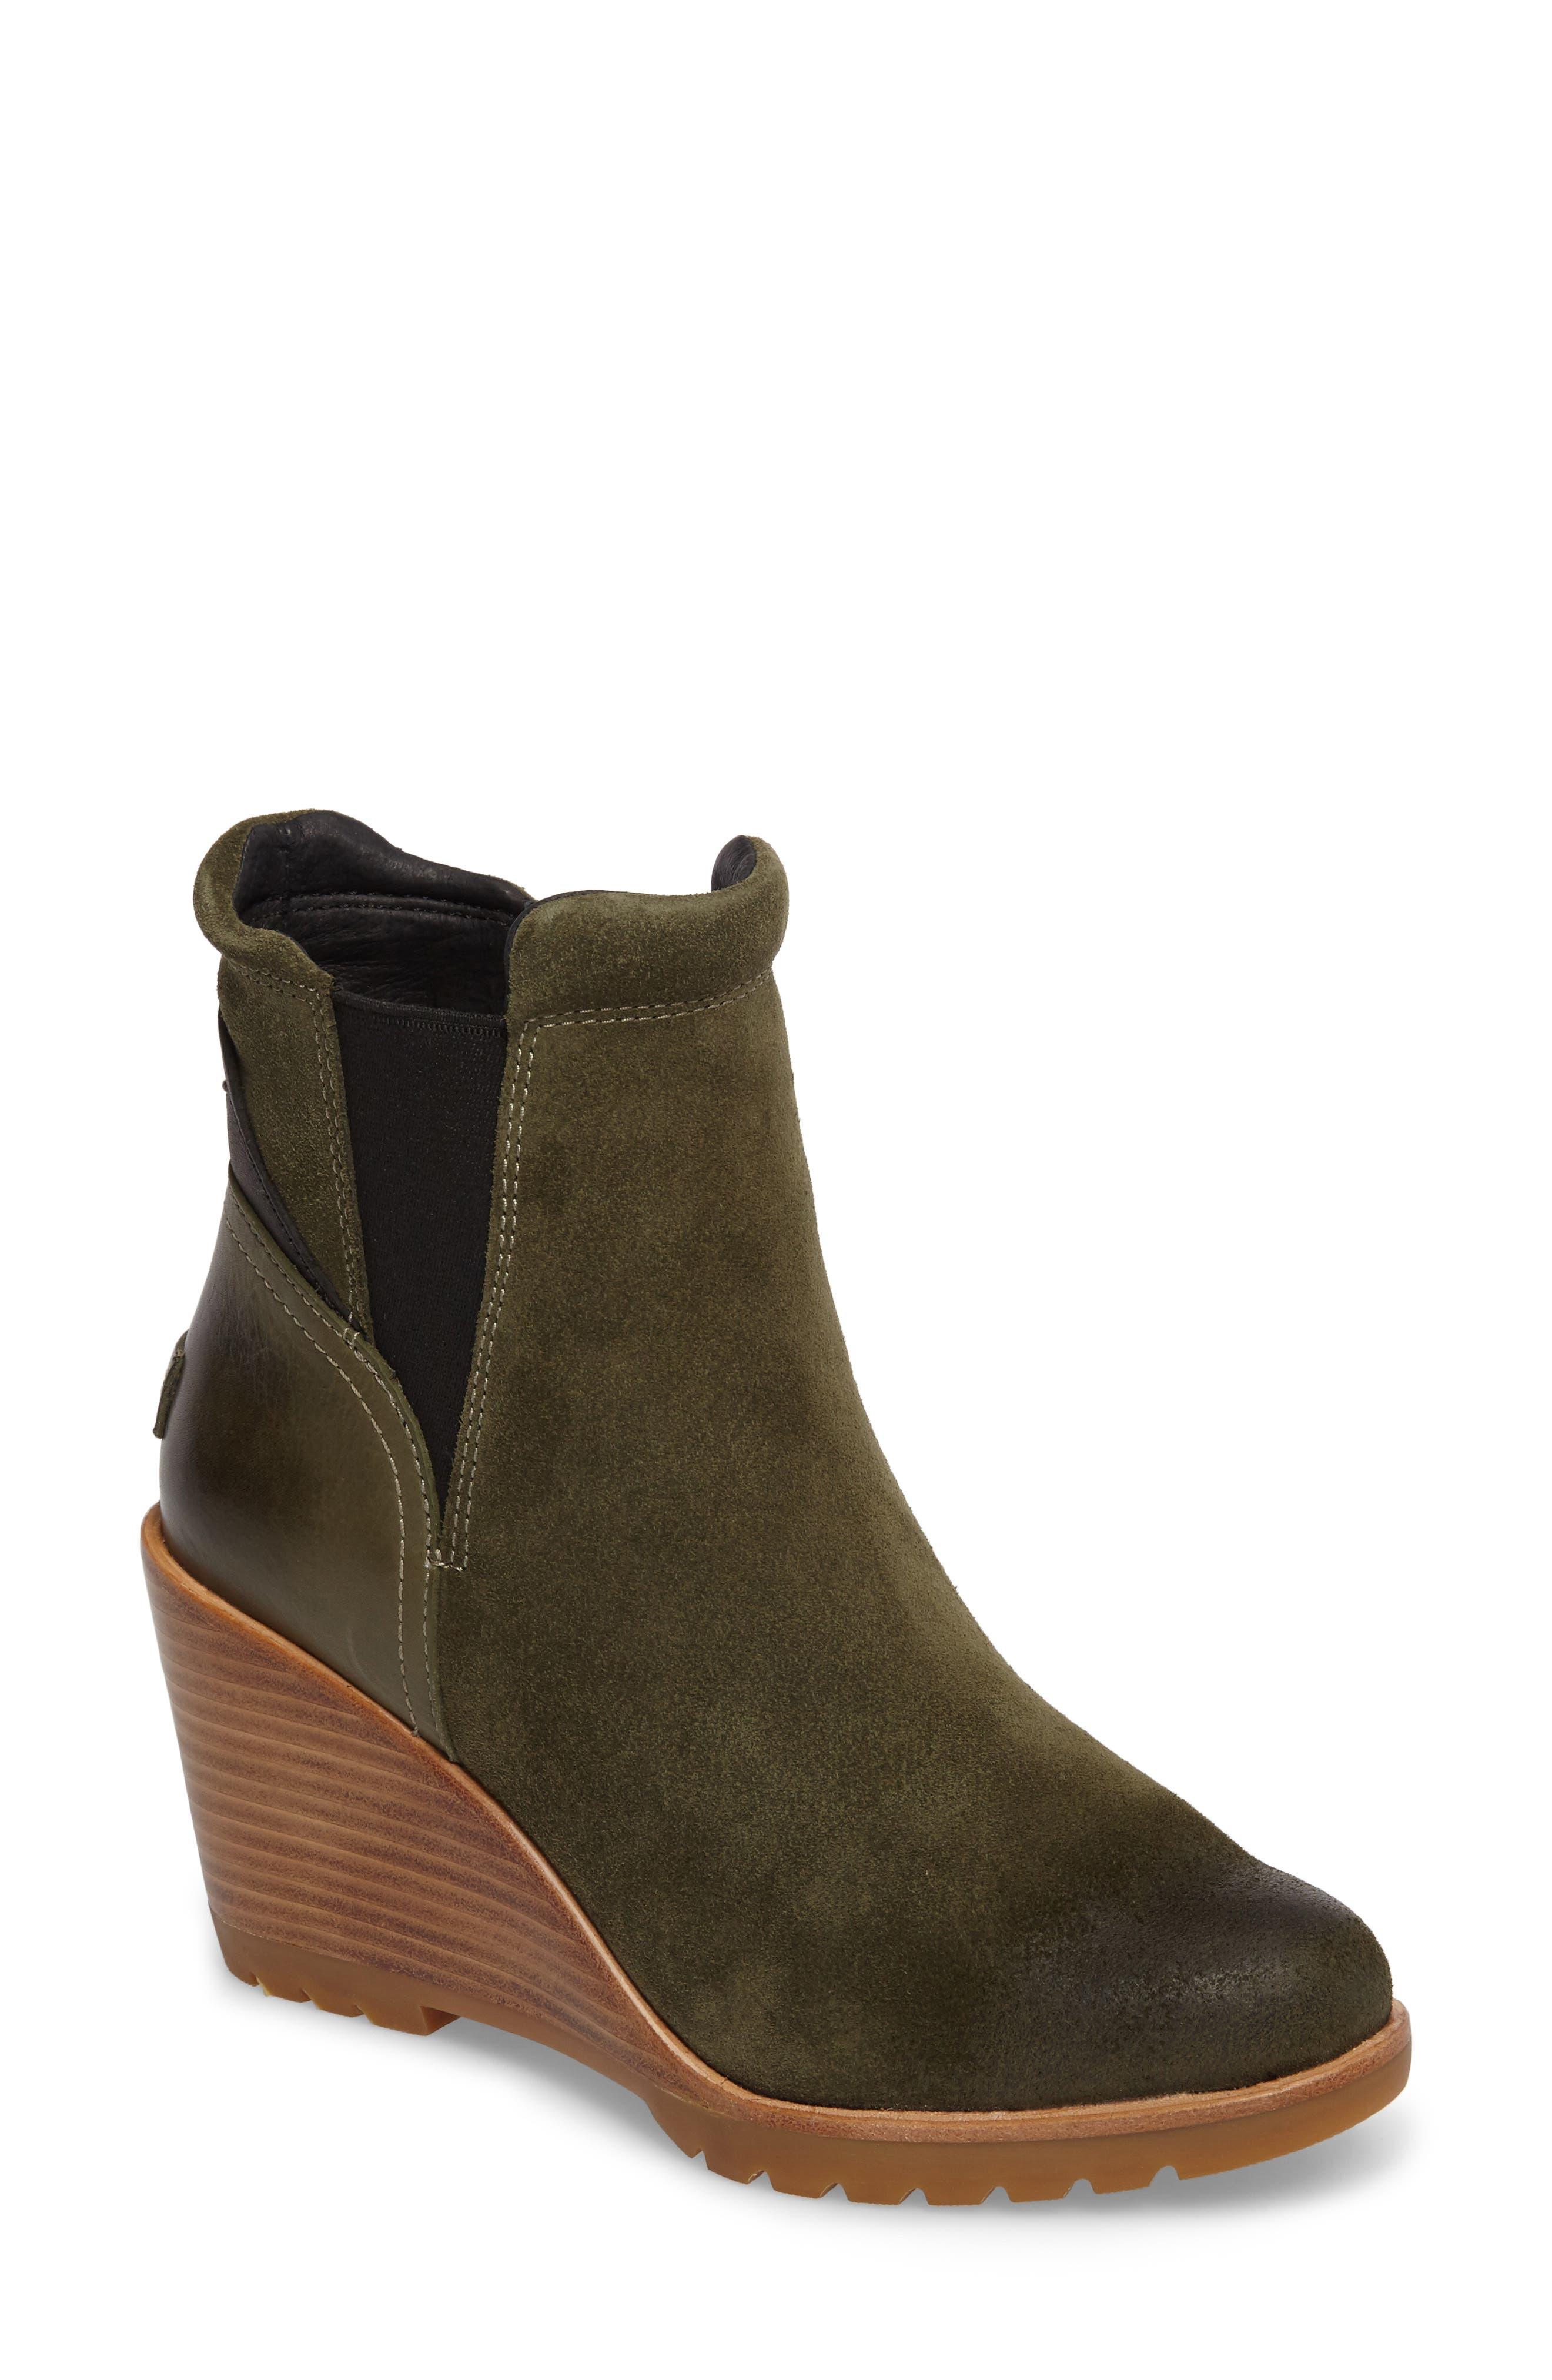 After Hours Chelsea Boot,                             Main thumbnail 5, color,